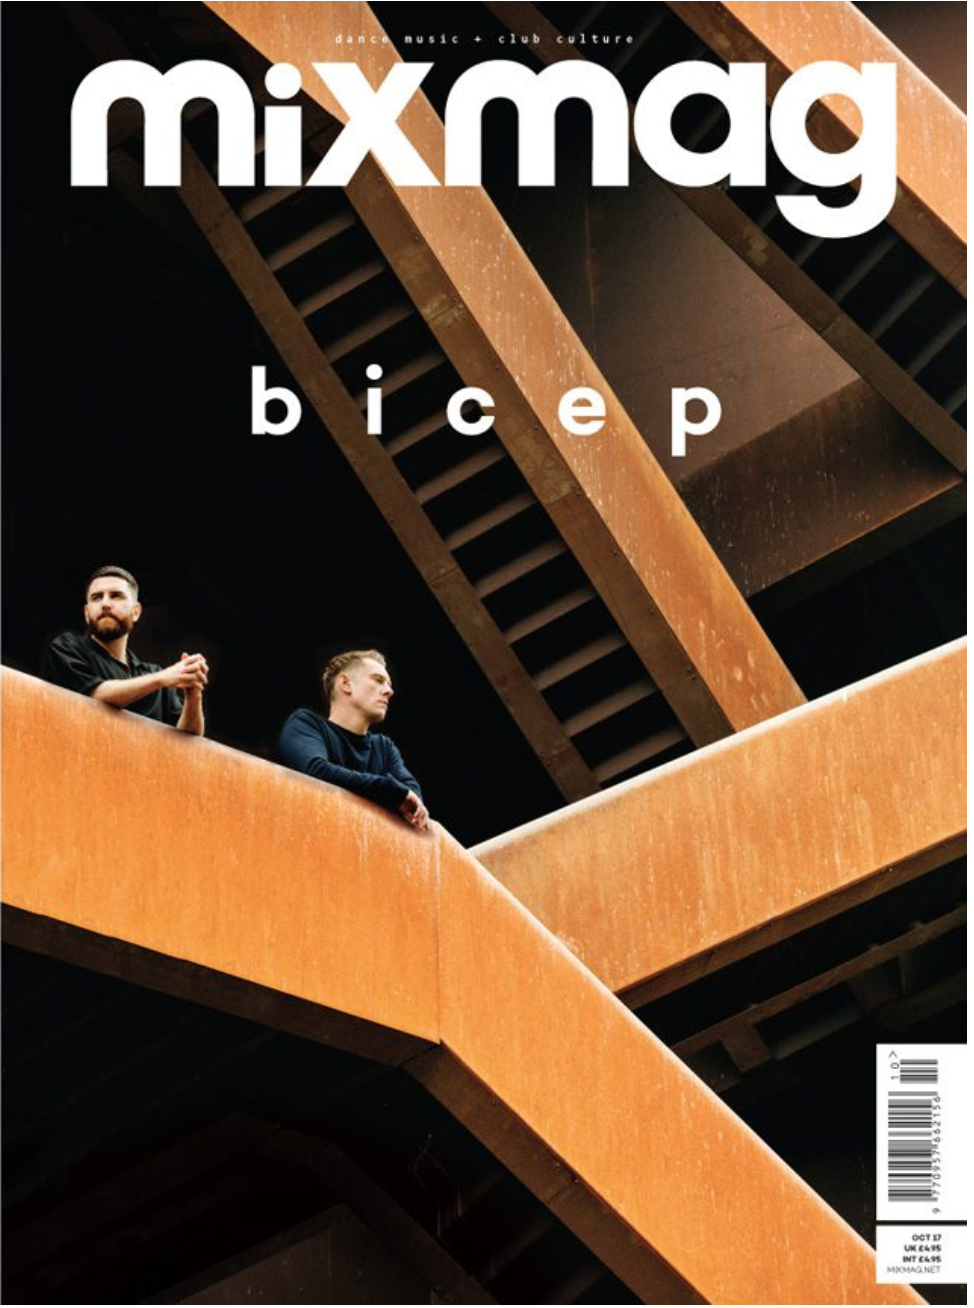 Mixmag October 2017 cover featuring Bicep